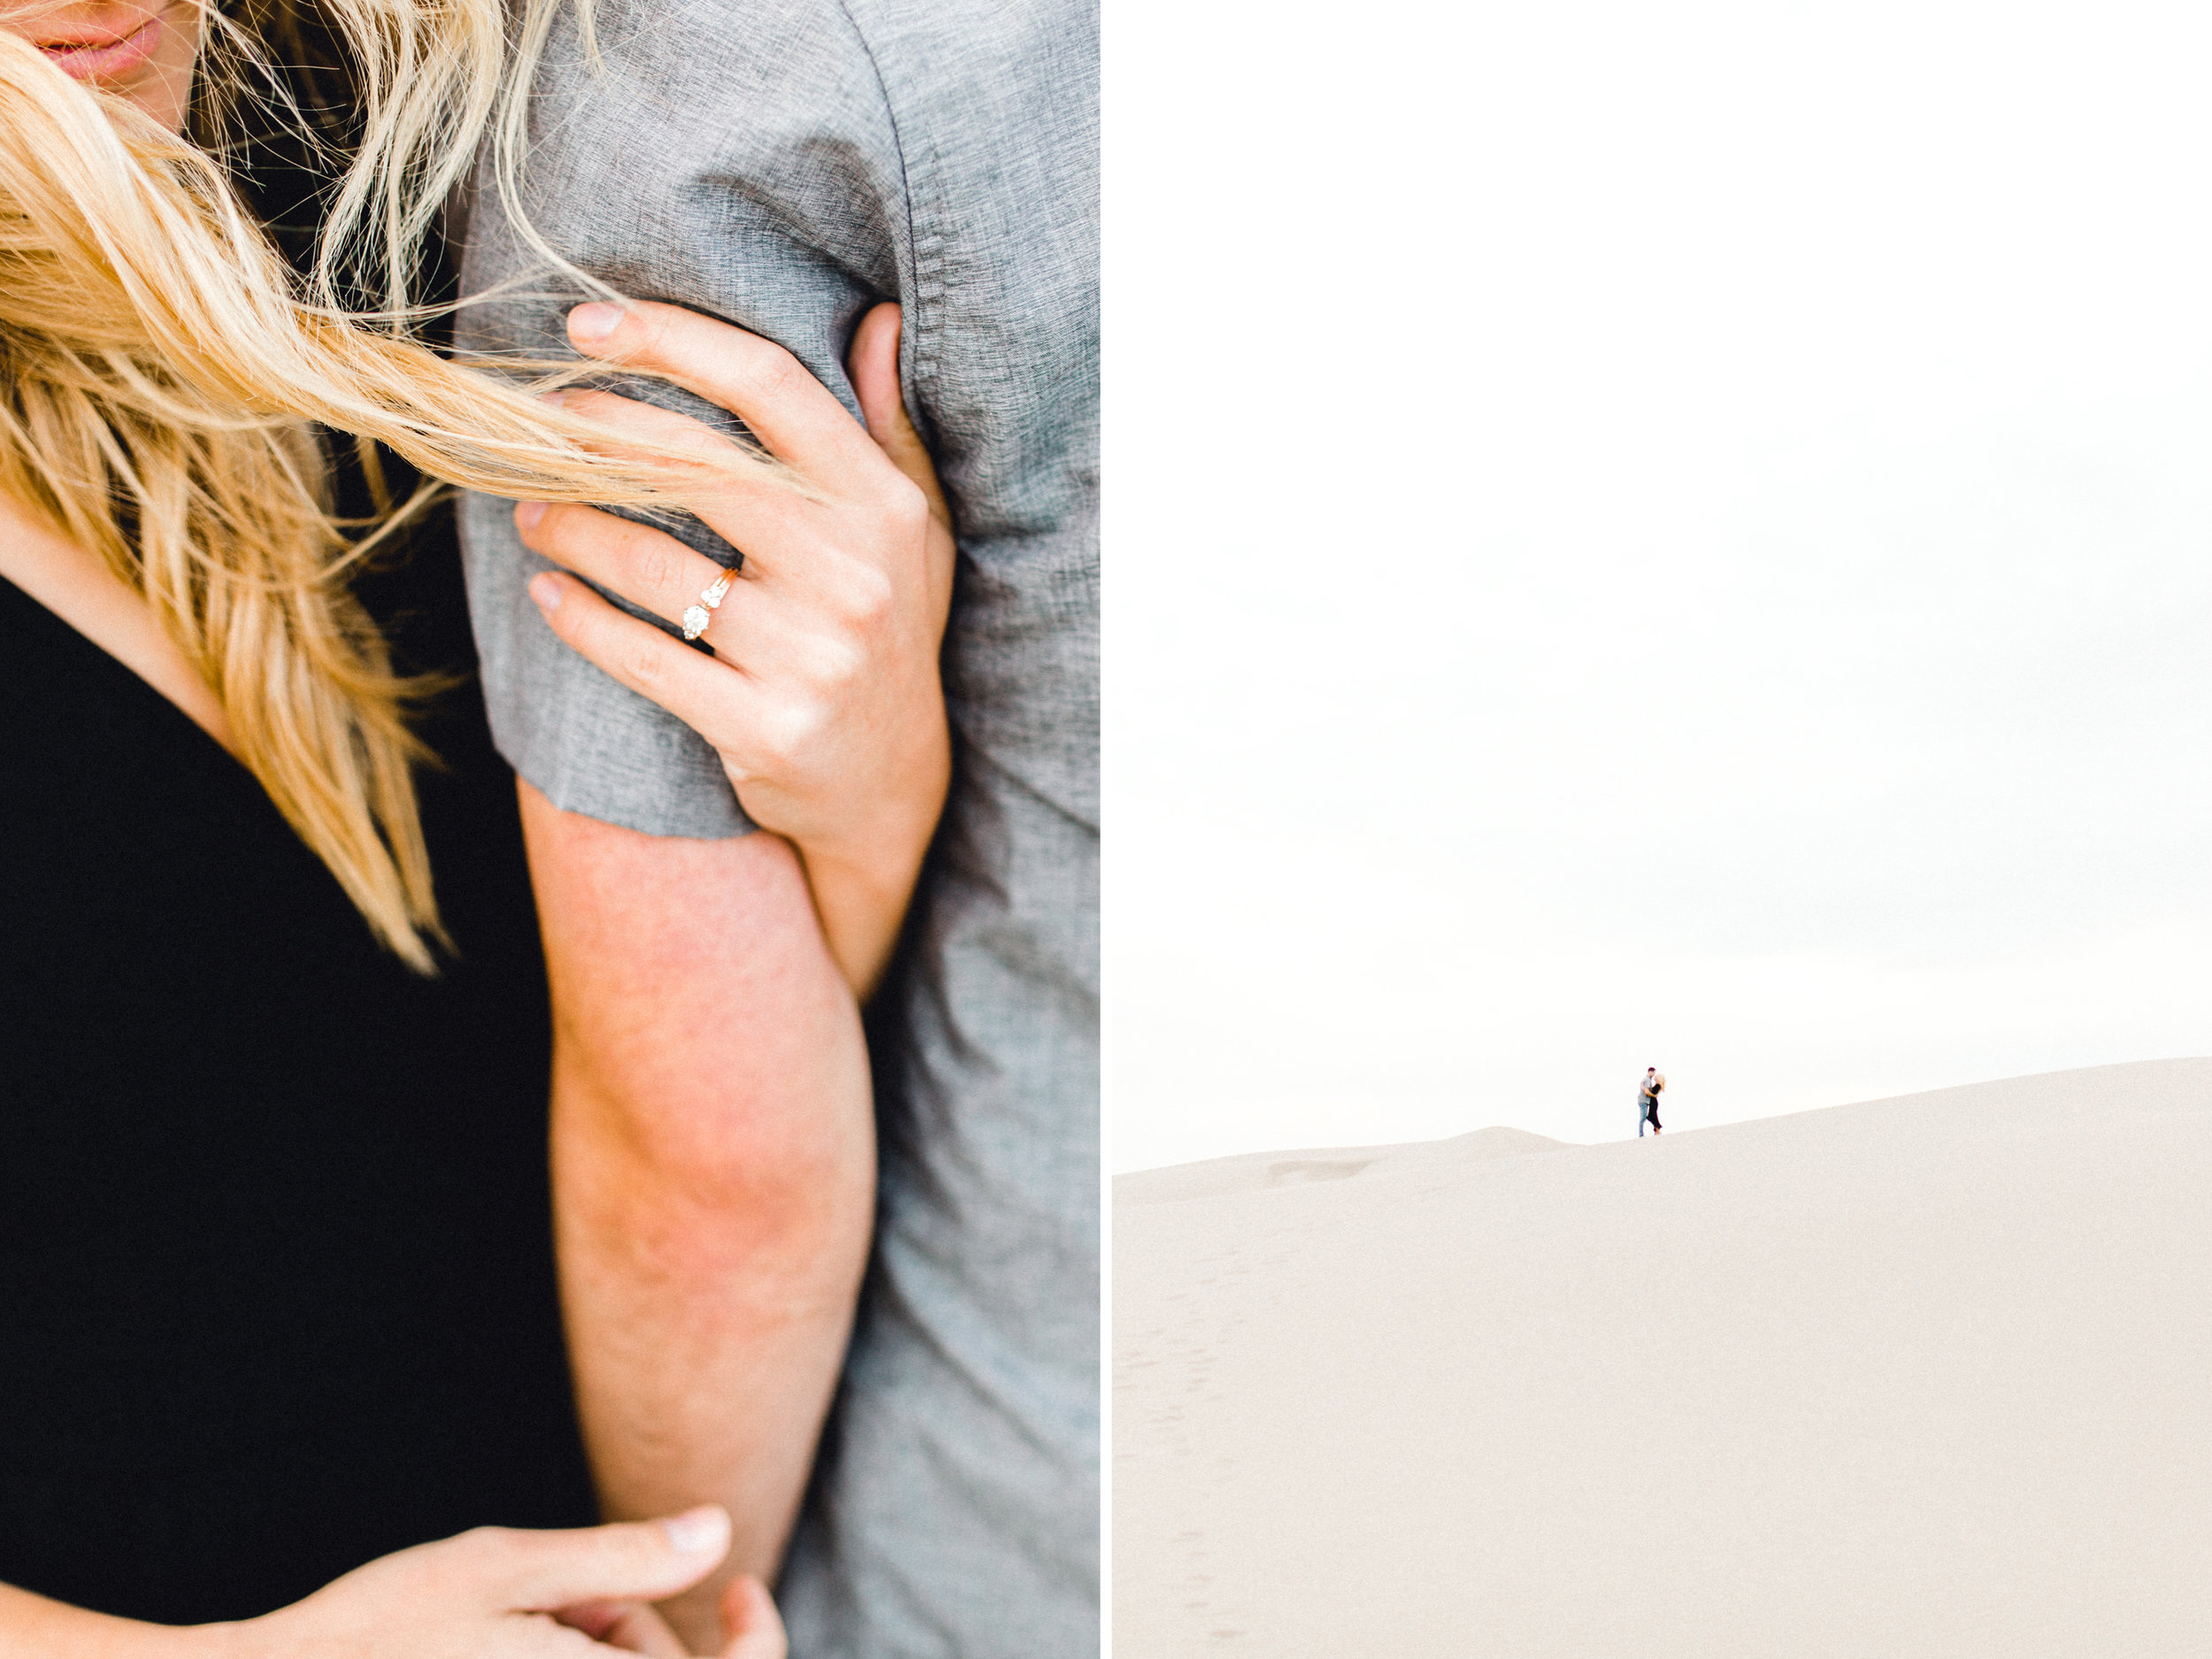 rexburg-idaho-sand-dunes-engagement-photographer-august-trevor12.jpg